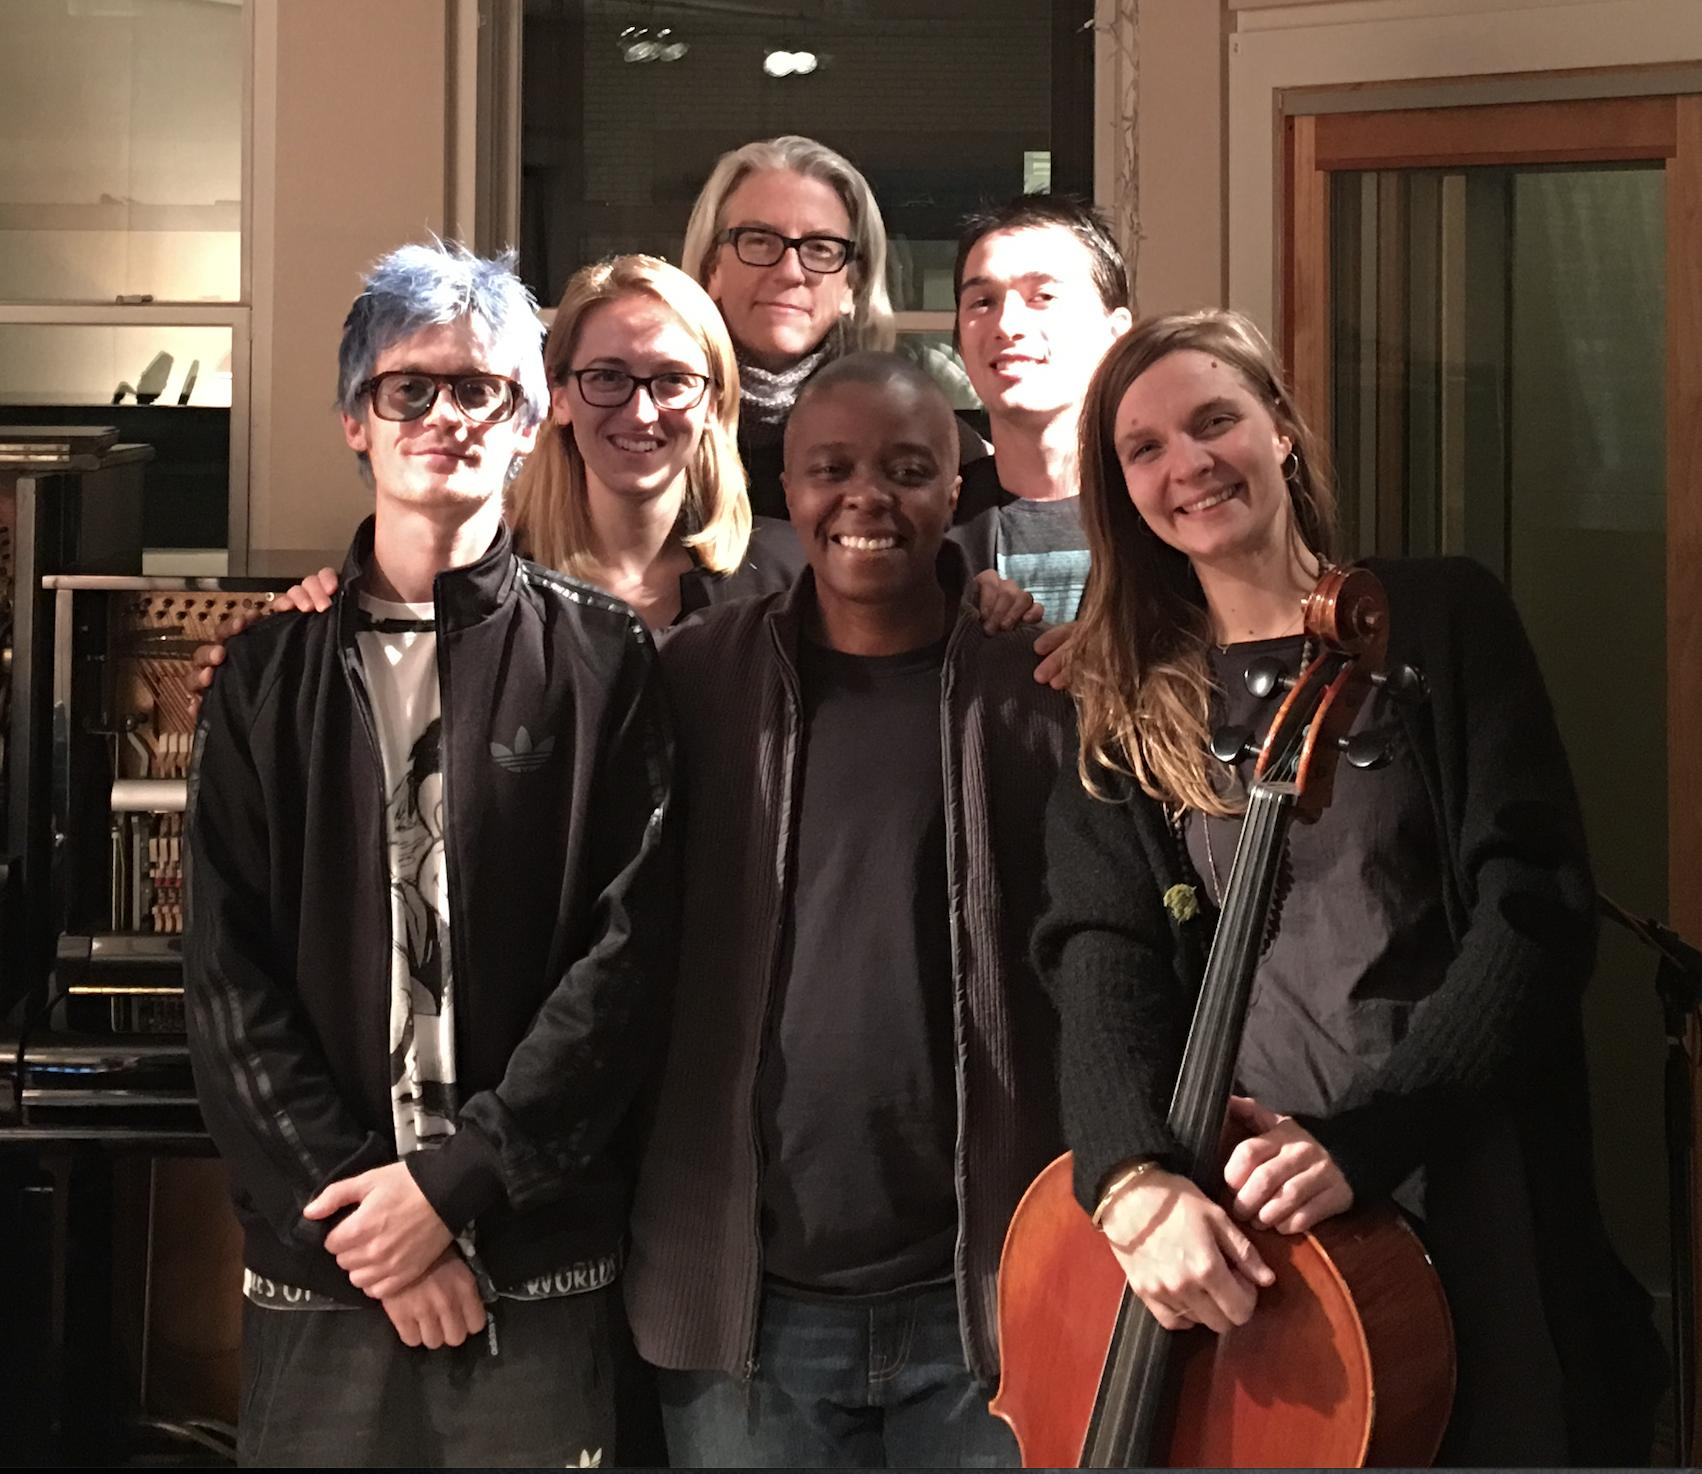 Craig Sutherland, Sarah D'hanens, Joslyn Barnes, Yance Ford, Daniel Timmons and Hildur Guðnadóttir in scoring session for Strong Island (2017)